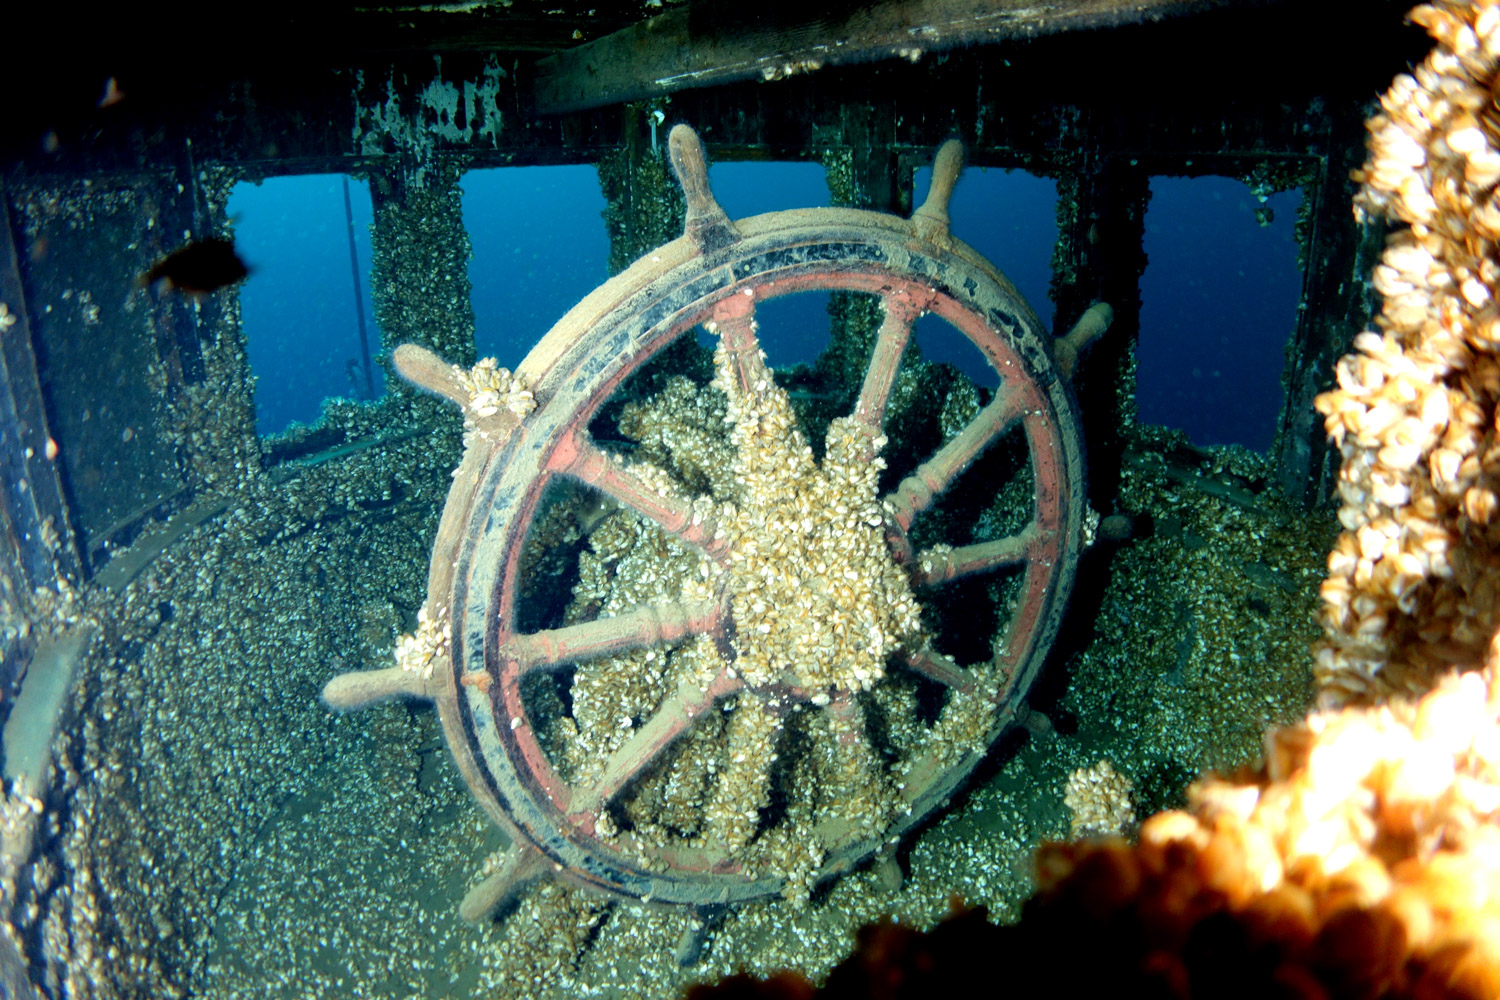 Despite being mostly covered by invasive zebra and quagga mussels, the MANASOO's wheel remains readily identi- fiable.